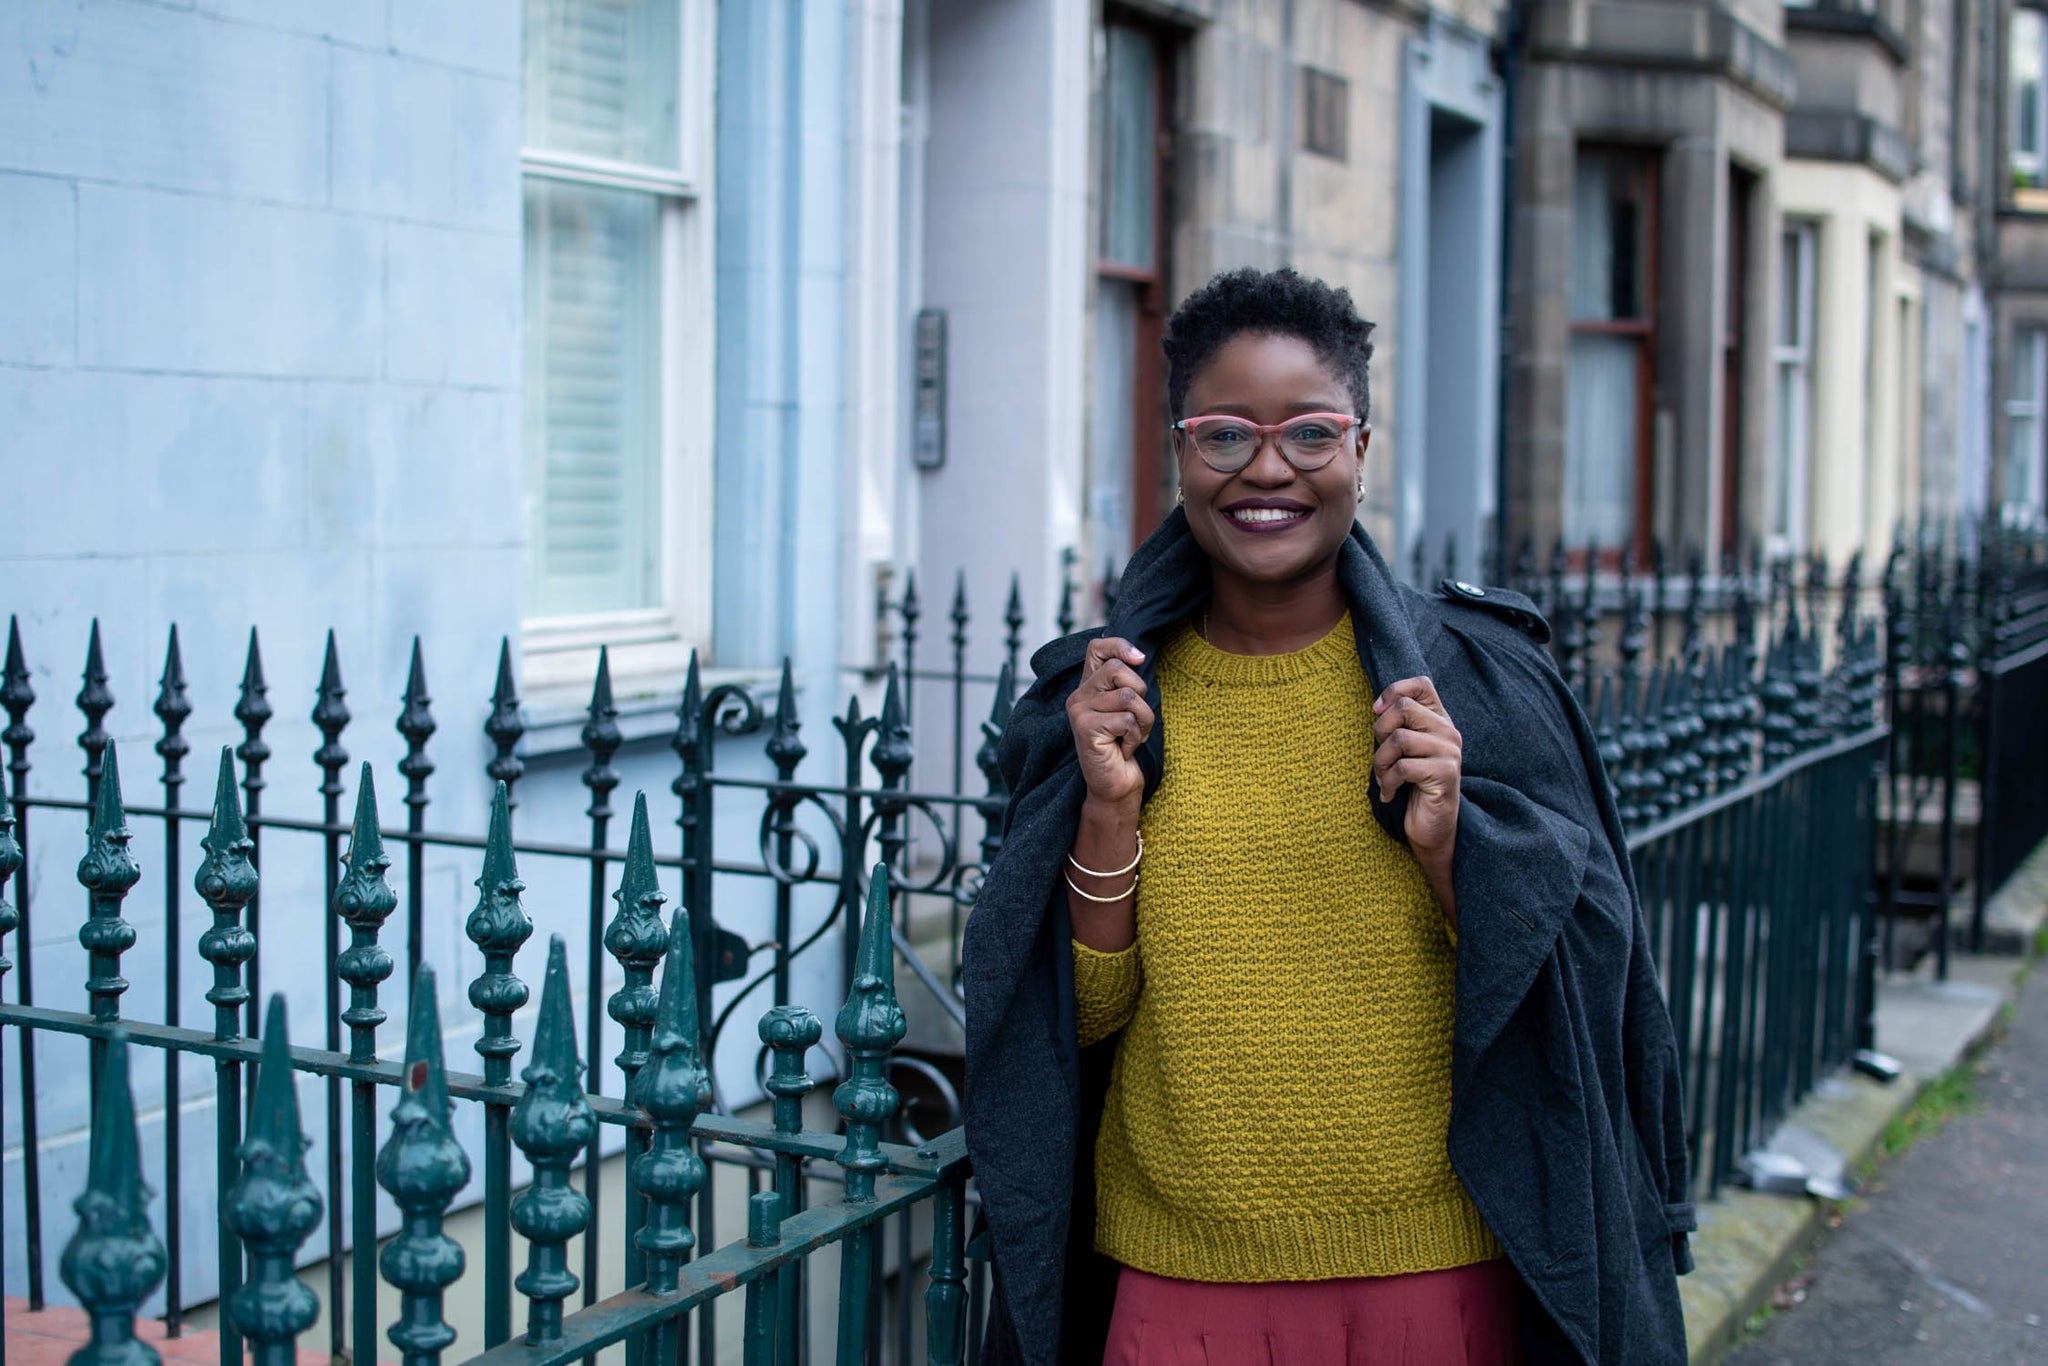 A smiling black skinned woman with short hair is standing in front of some railings. She is wearing a yellow textures knitted sweater over a pink skirt. She has a raincoat thrown over her shoulders.